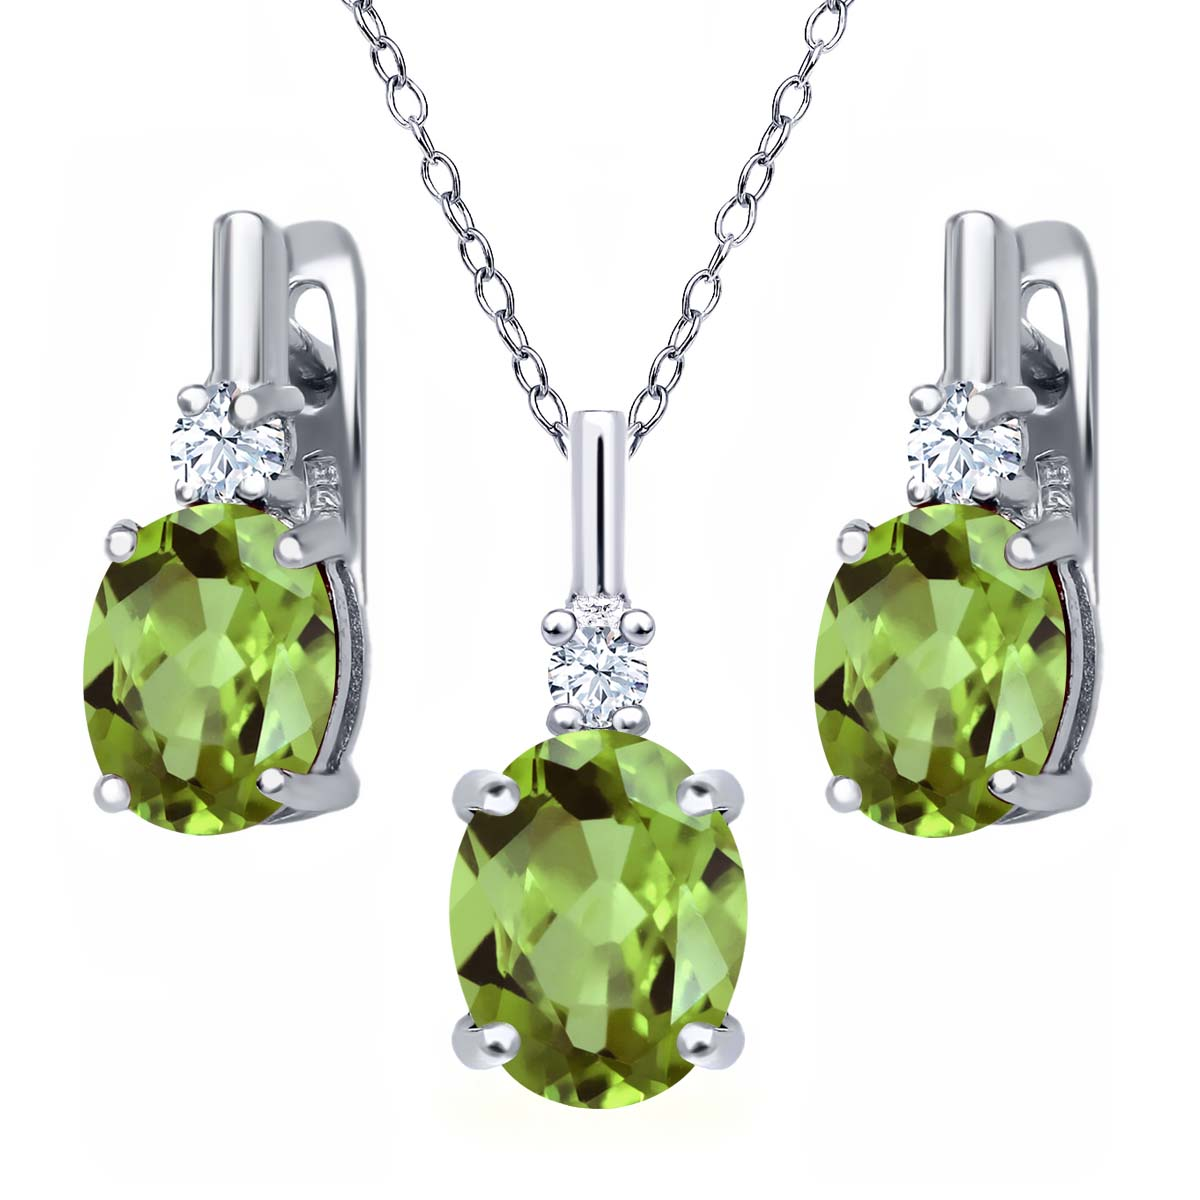 4.13 Ct Oval Green Peridot White Topaz 925 Sterling Silver Pendant Earrings Set by